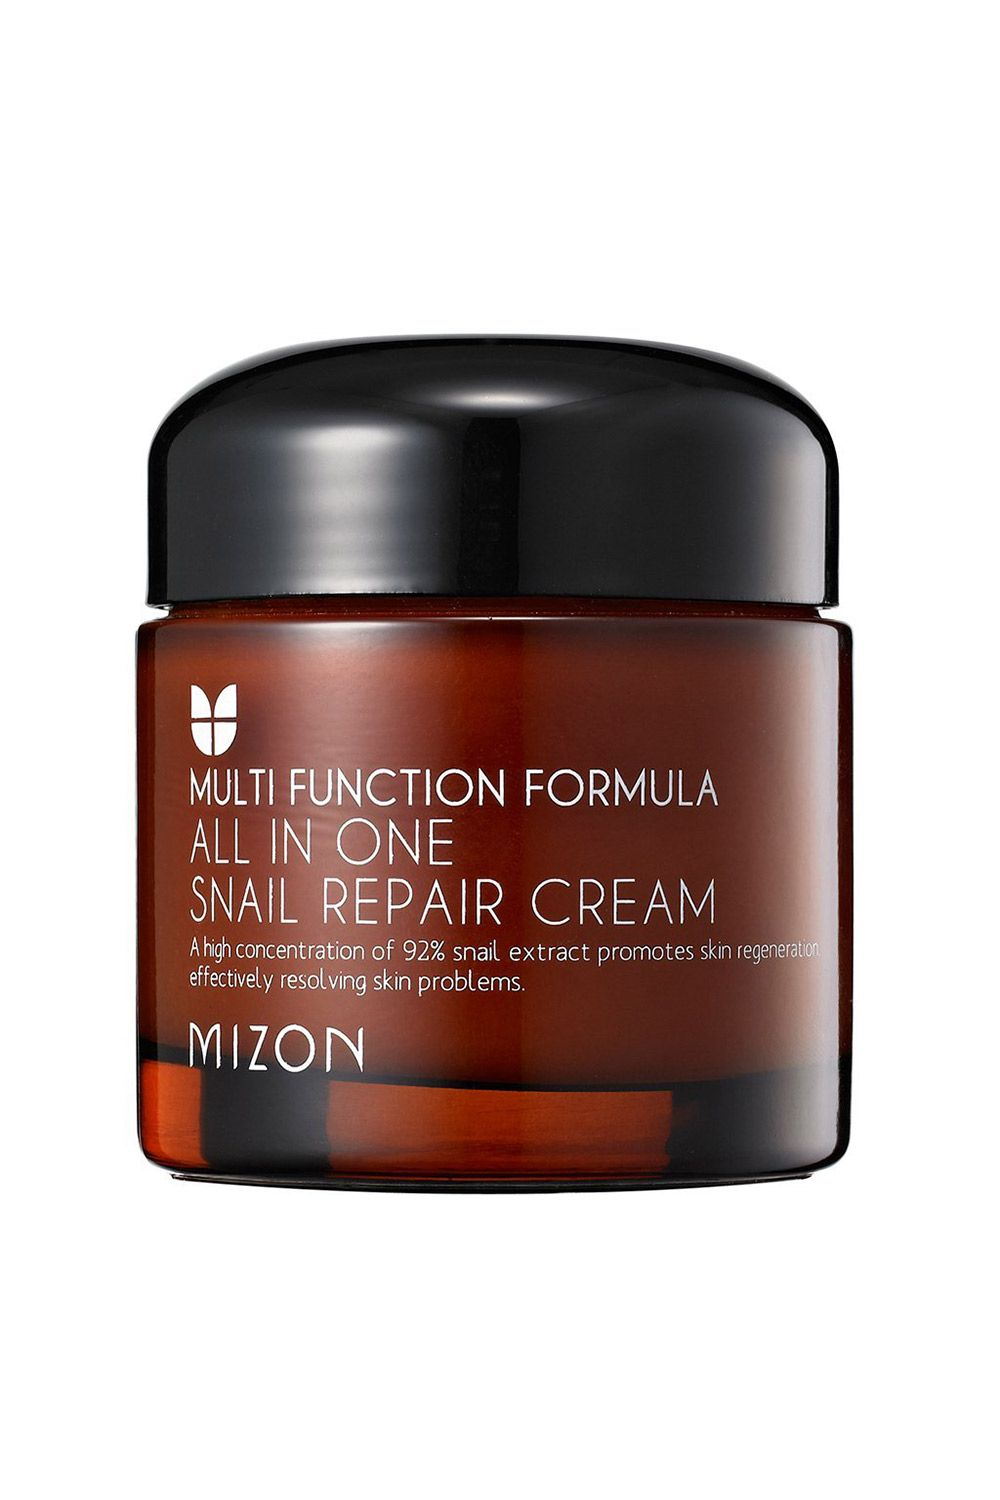 "<p>Yes, snails seem like a gimmicky marketing ploy, but they're a staple in K-beauty, thanks to the skin tone-evening powers in their mucin. And this lightweight, mattifying face cream is filled with 92-percent snail extract, making it a dark-spot fading powerhouse.</p><p><i data-redactor-tag=""i"">Mizon All-In-One Snail Repair Cream, $12</i></p><p><strong data-redactor-tag=""strong"">BUY IT: <a href=""https://www.amazon.com/MIZON-Snail-Repair-Cream-Grams/dp/B00AF63QQE?th=1"">amazon.com</a>.</strong></p>"